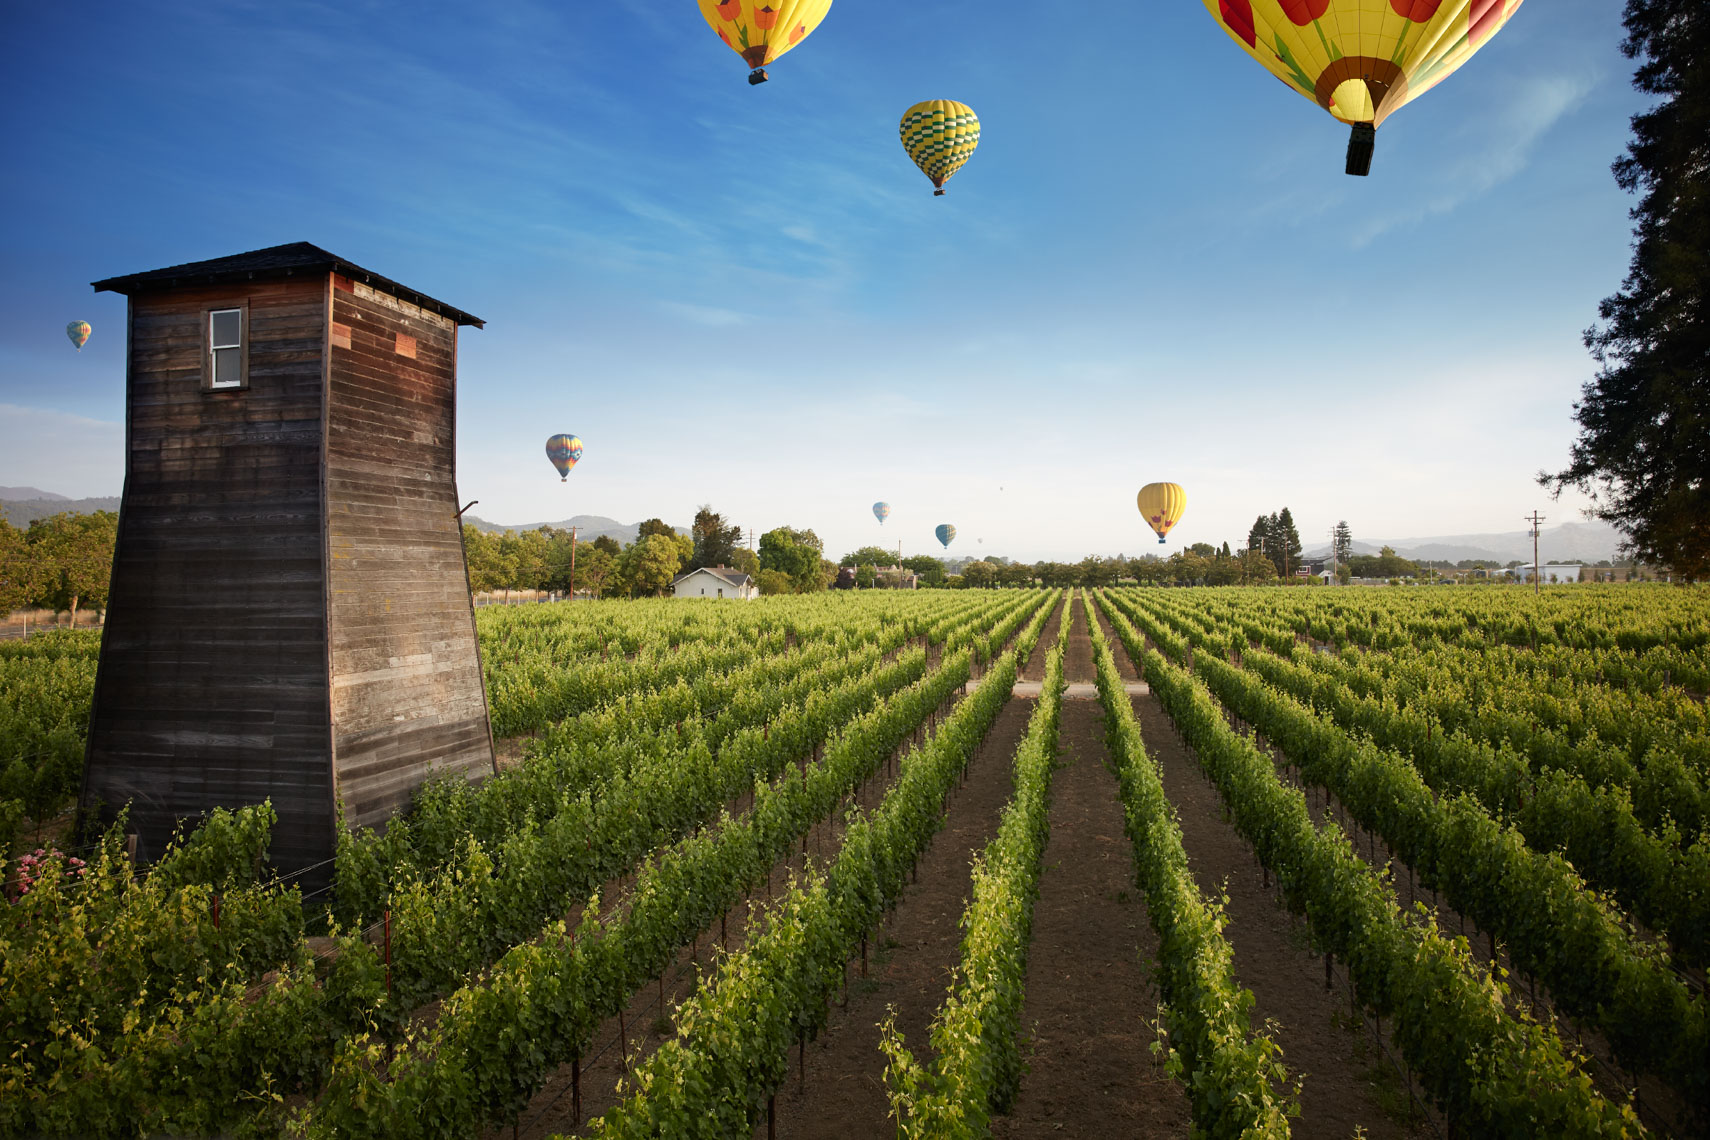 Colorfol hot air balloons hovering over green wine vinyards early morning shot for Senza Hotel and Spa in Napa California San Francisco lifestyle photographer